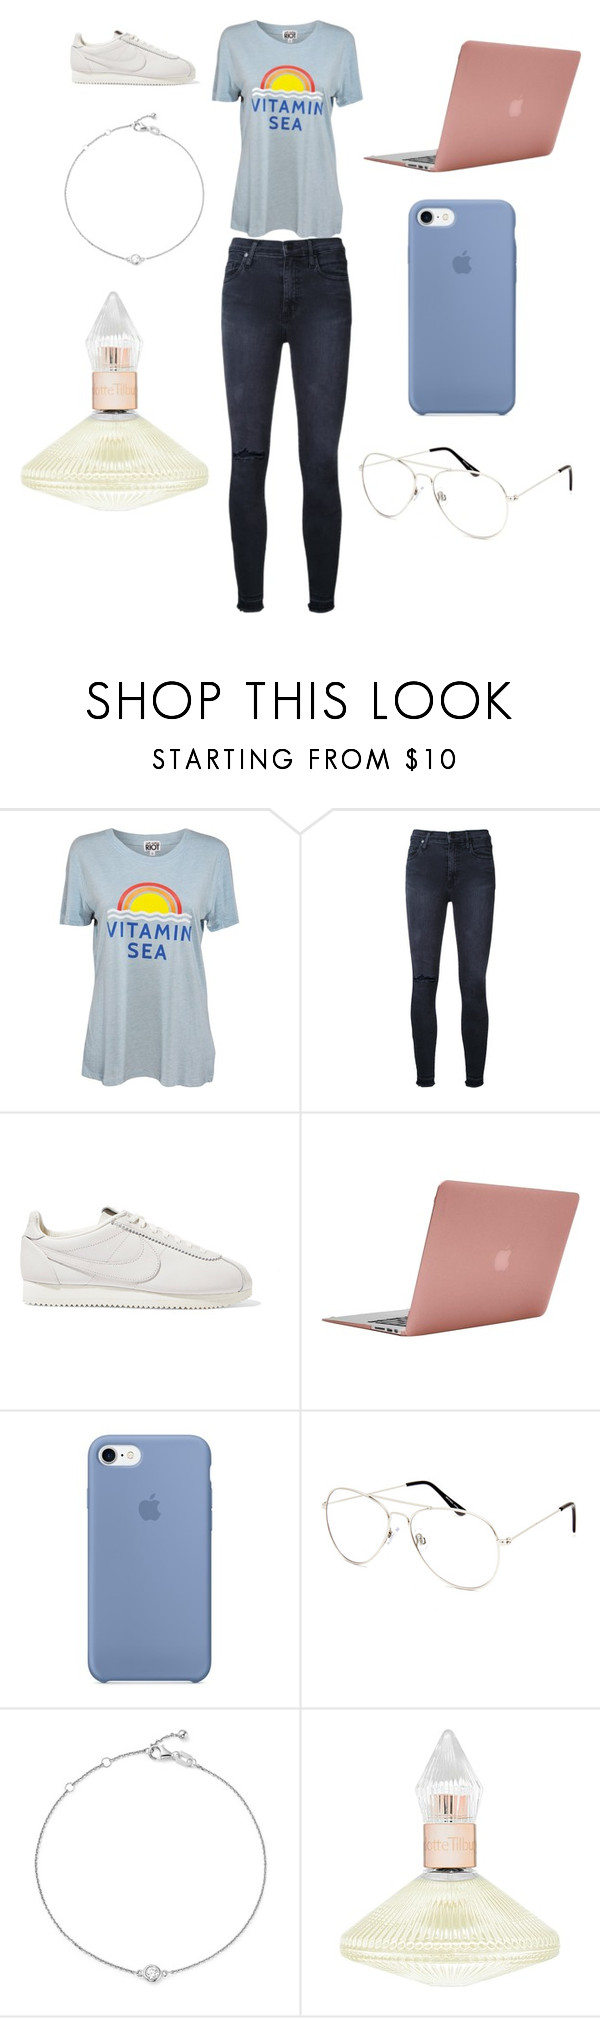 """""""Sans titre #6295"""" by merveille67120 ❤ liked on Polyvore featuring Sub_Urban Riot, Nobody Denim, NIKE, Incase, Blue Crown, Bloomingdale's and Charlotte Tilbury"""